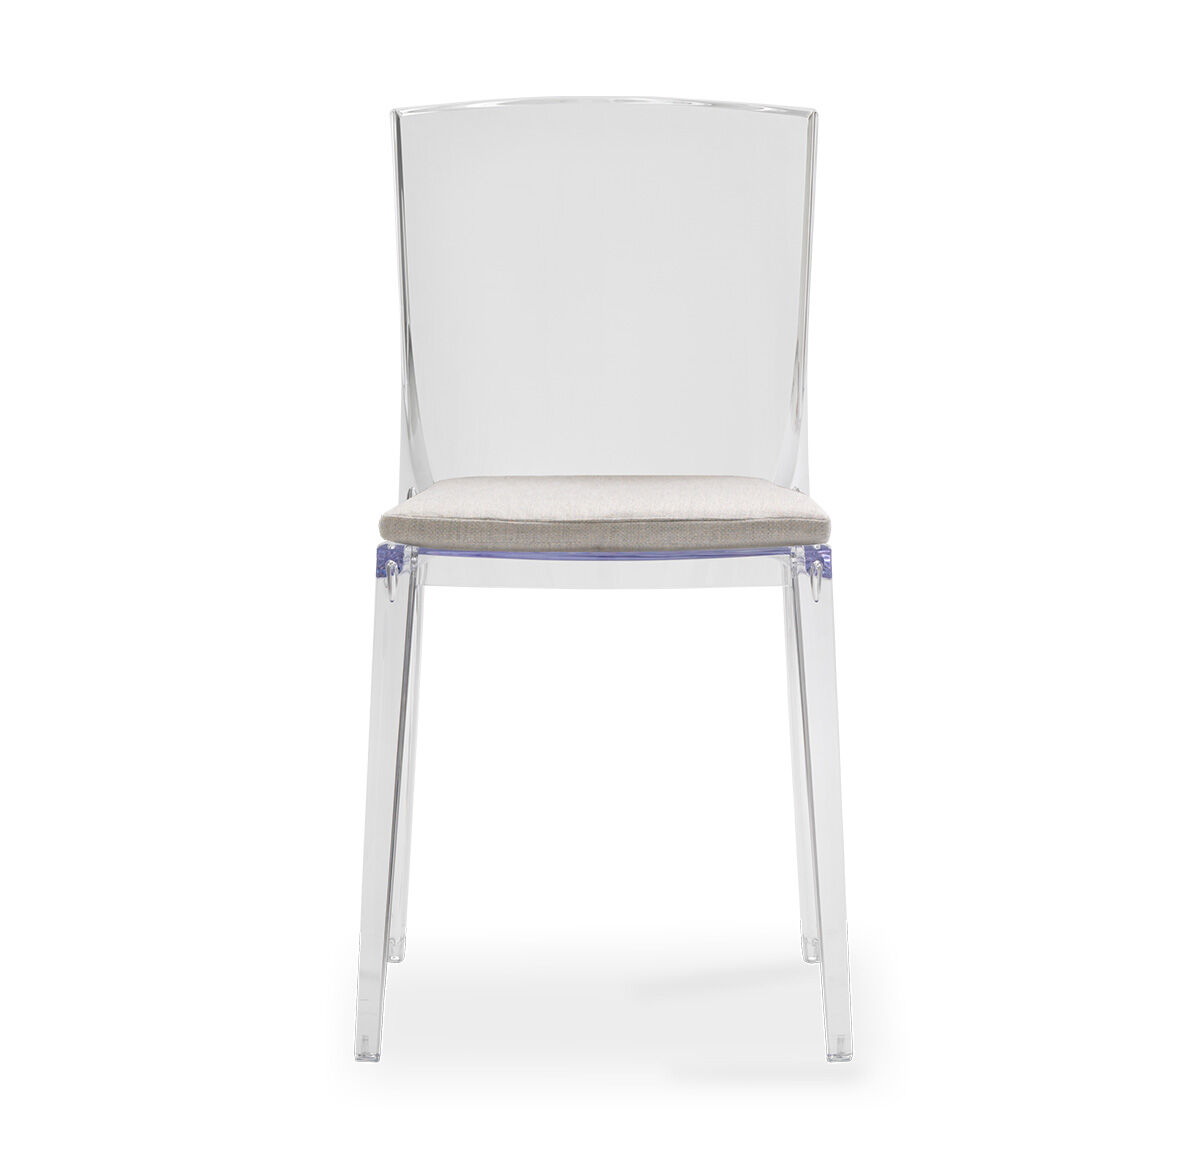 see through dining chairs bruno lift chair parts alain clear side with cushion